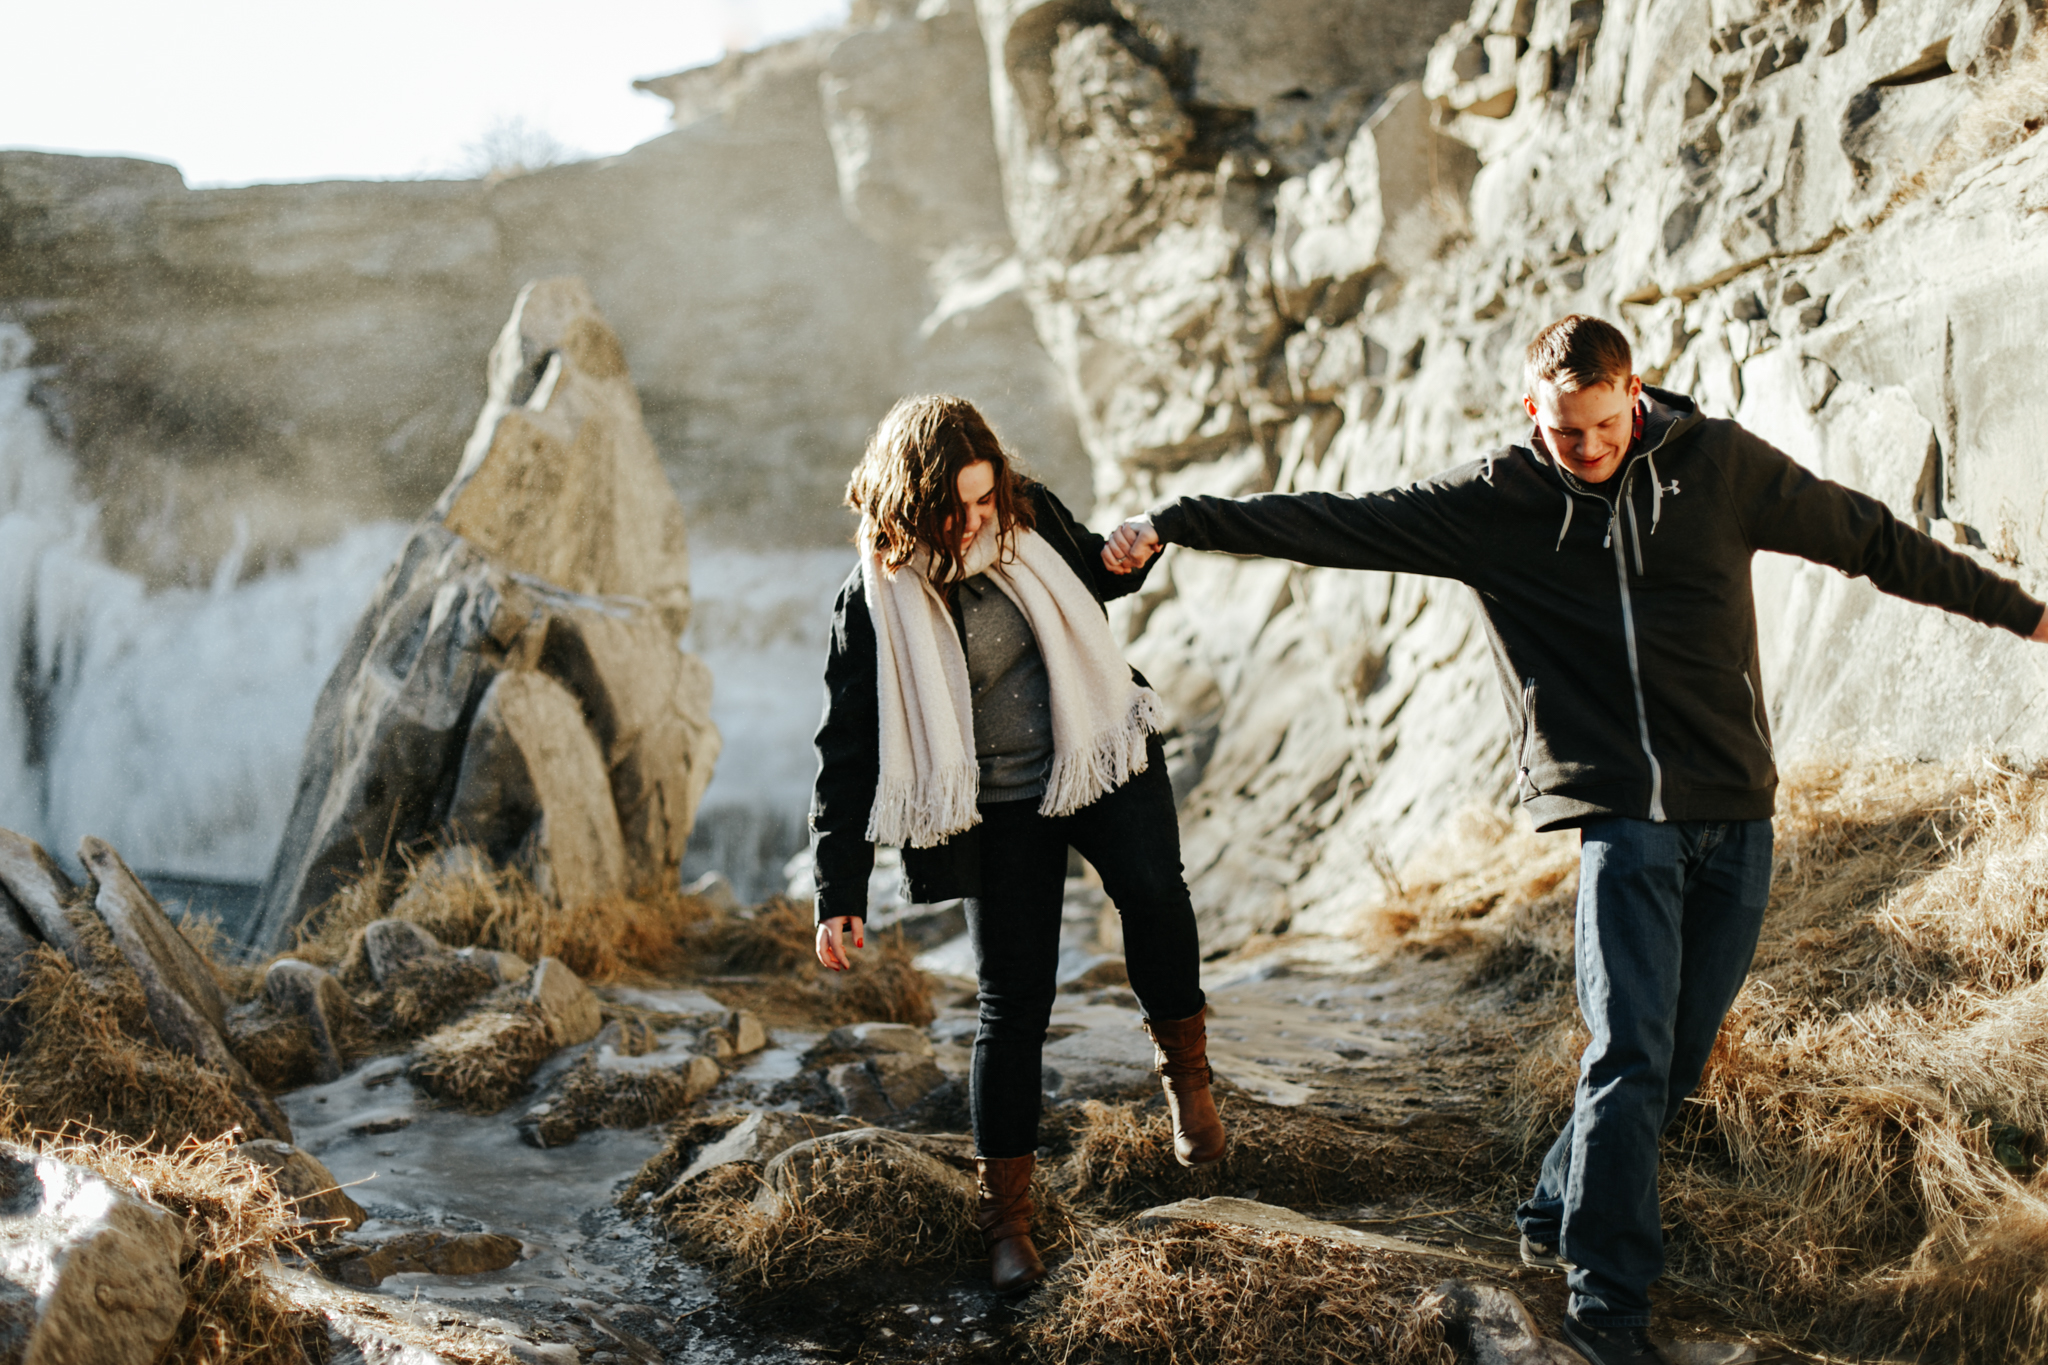 lethbridge-photographer-love-and-be-loved-photography-lundbreck-falls-engagement-clarissa-clayton-picture-image-photo--7.jpg